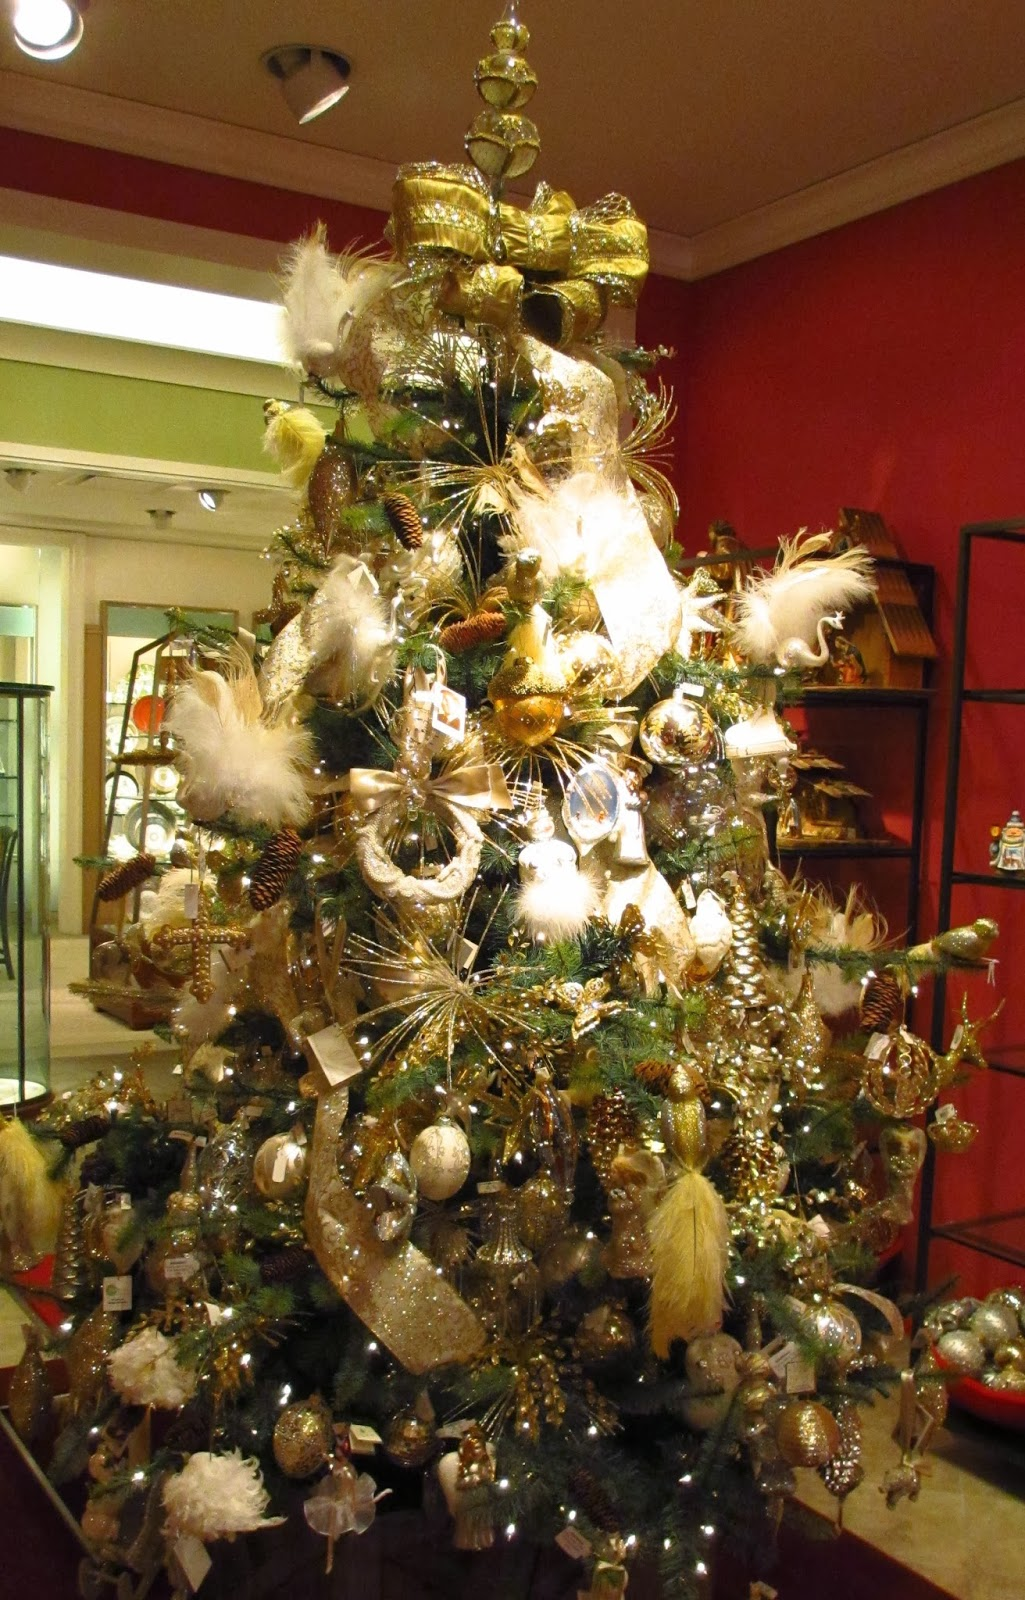 a modern take on classic christmas tree found on mneimanmarcuscom trees trees tree decor